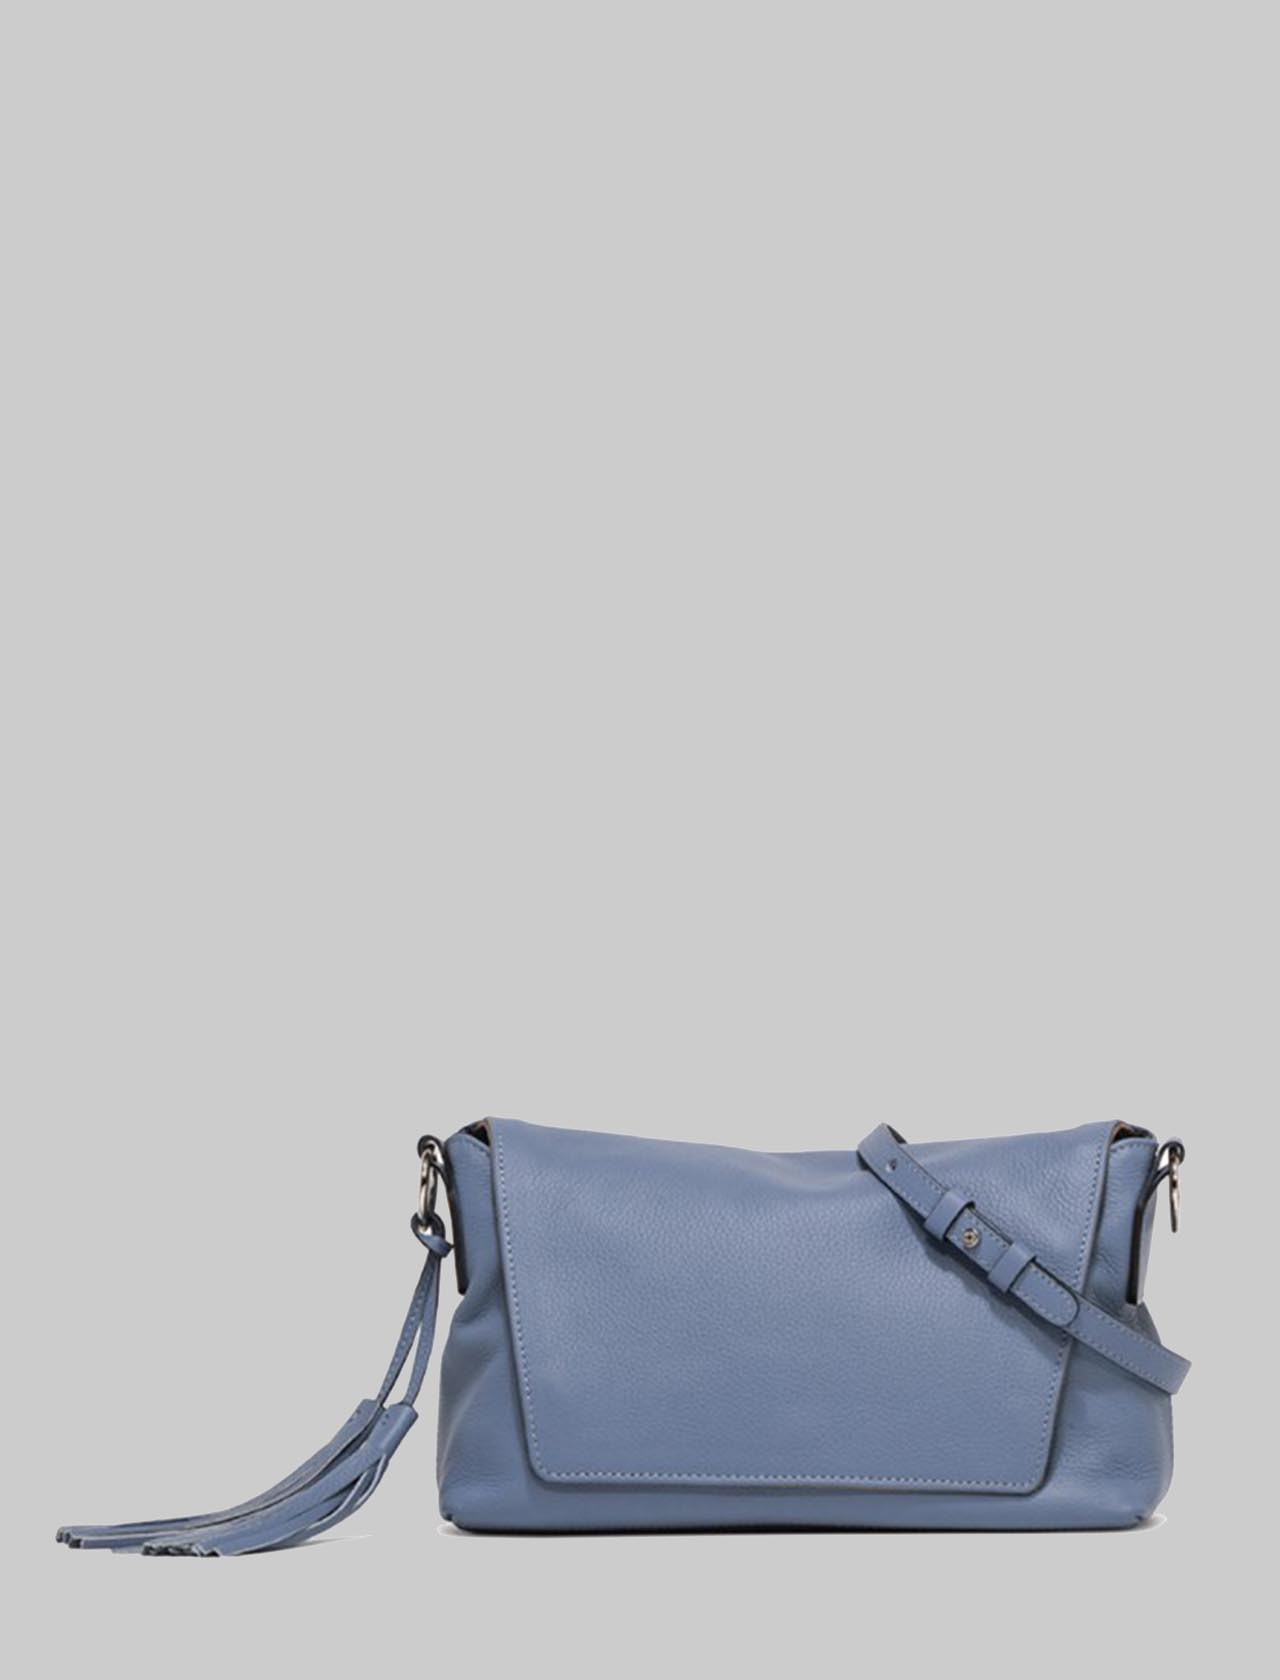 Africa Woman Shoulder Bag In Powder Blue Leather With Chain Handle And Adjustable And Removable Shoulder Strap Gianni Chiarini | Bags and backpacks | BS778611710